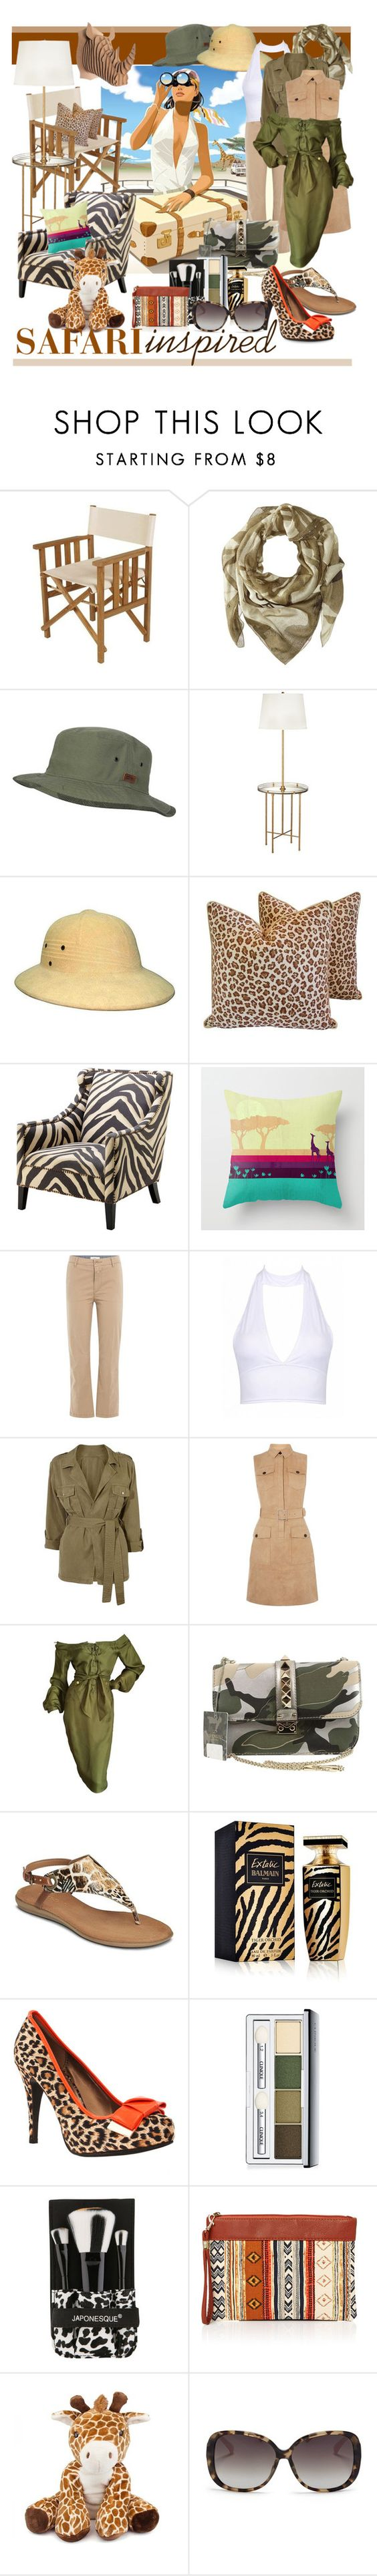 """Safari Inspired – Travel-Quest"" by geewhizart ❤ liked on Polyvore featuring Brooks, WALL, Barlow Tyrie, Marc by Marc Jacobs, Billabong, Kathy Ireland, Eichholtz, Closed, Karen Millen and Tom Ford"